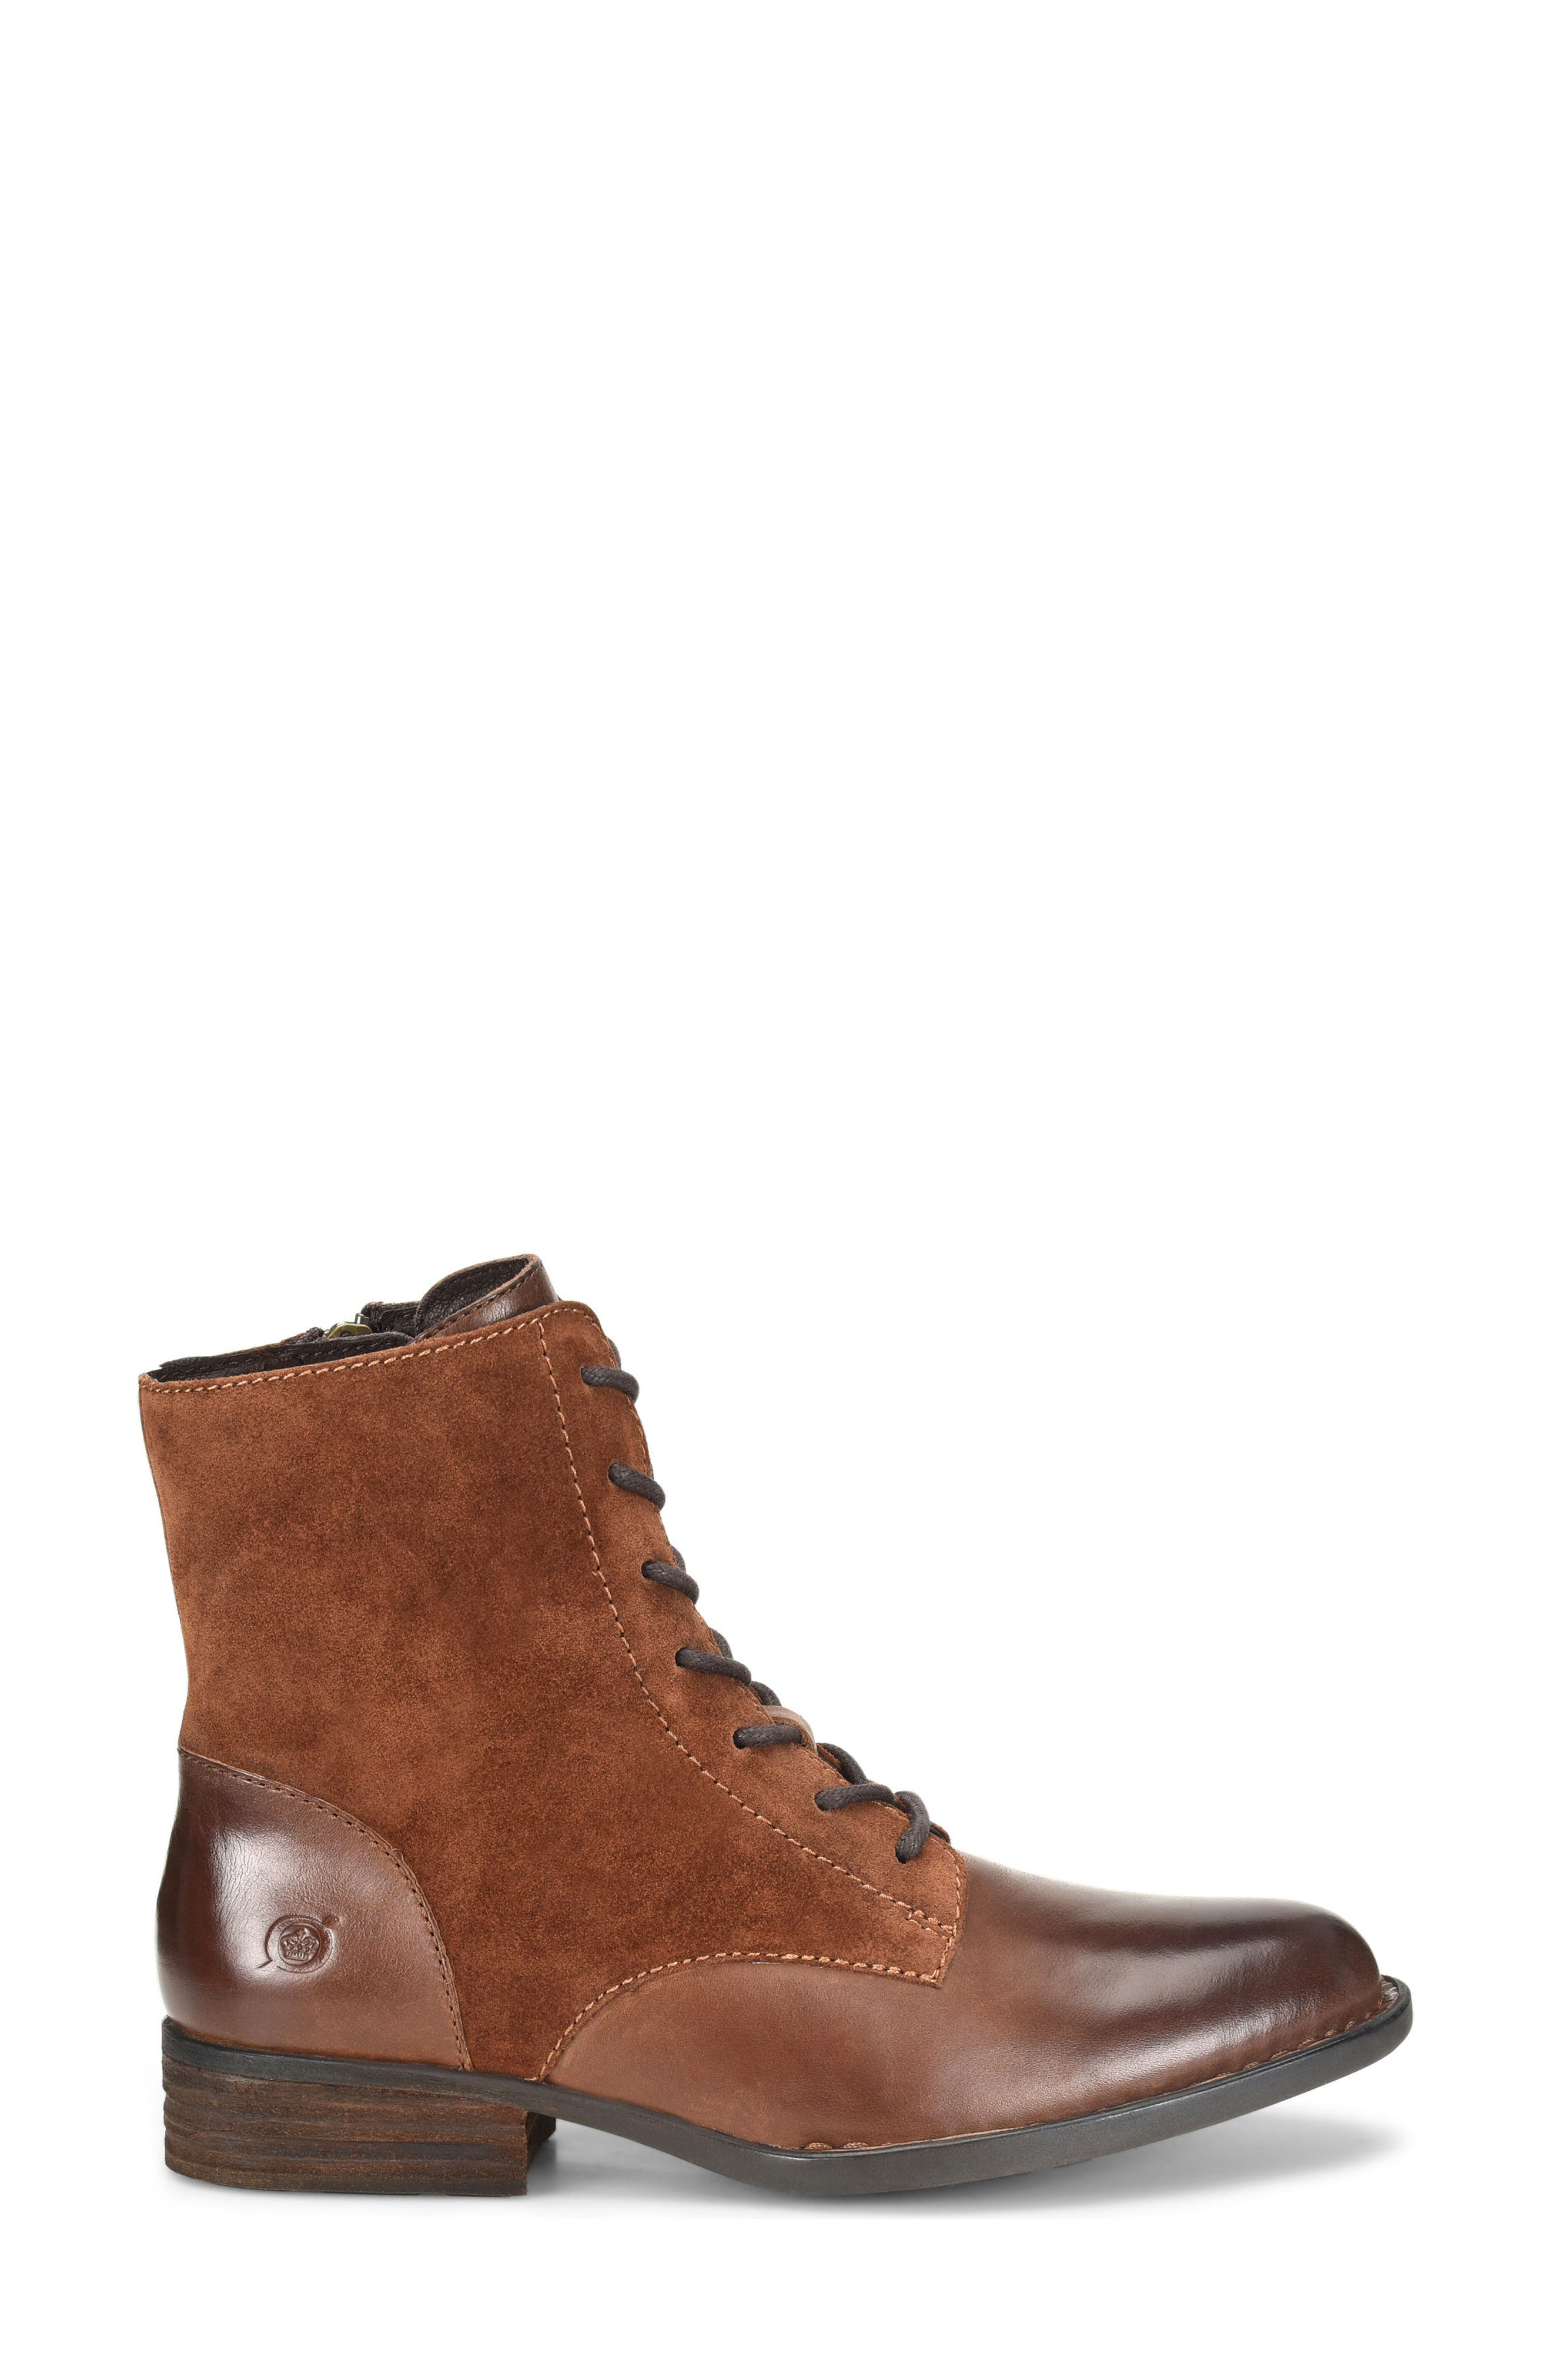 Clements Lace-Up Boot,                             Alternate thumbnail 11, color,